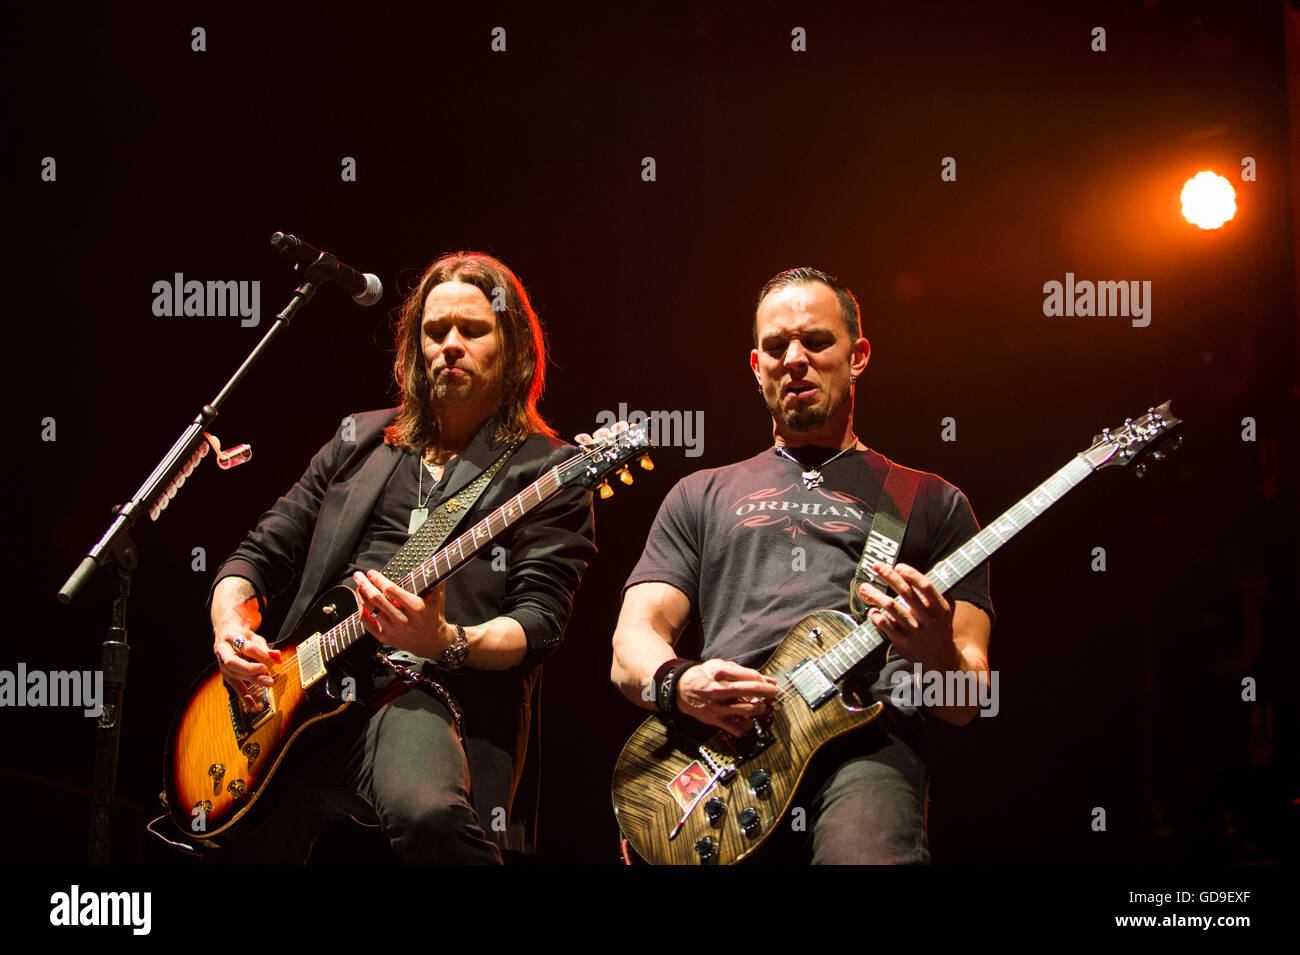 Glasgow, Scotland, Uk - October 13, 2013: Myles Kennedy and Mark Tremonti of American rock band Alter Bridge - Stock Image